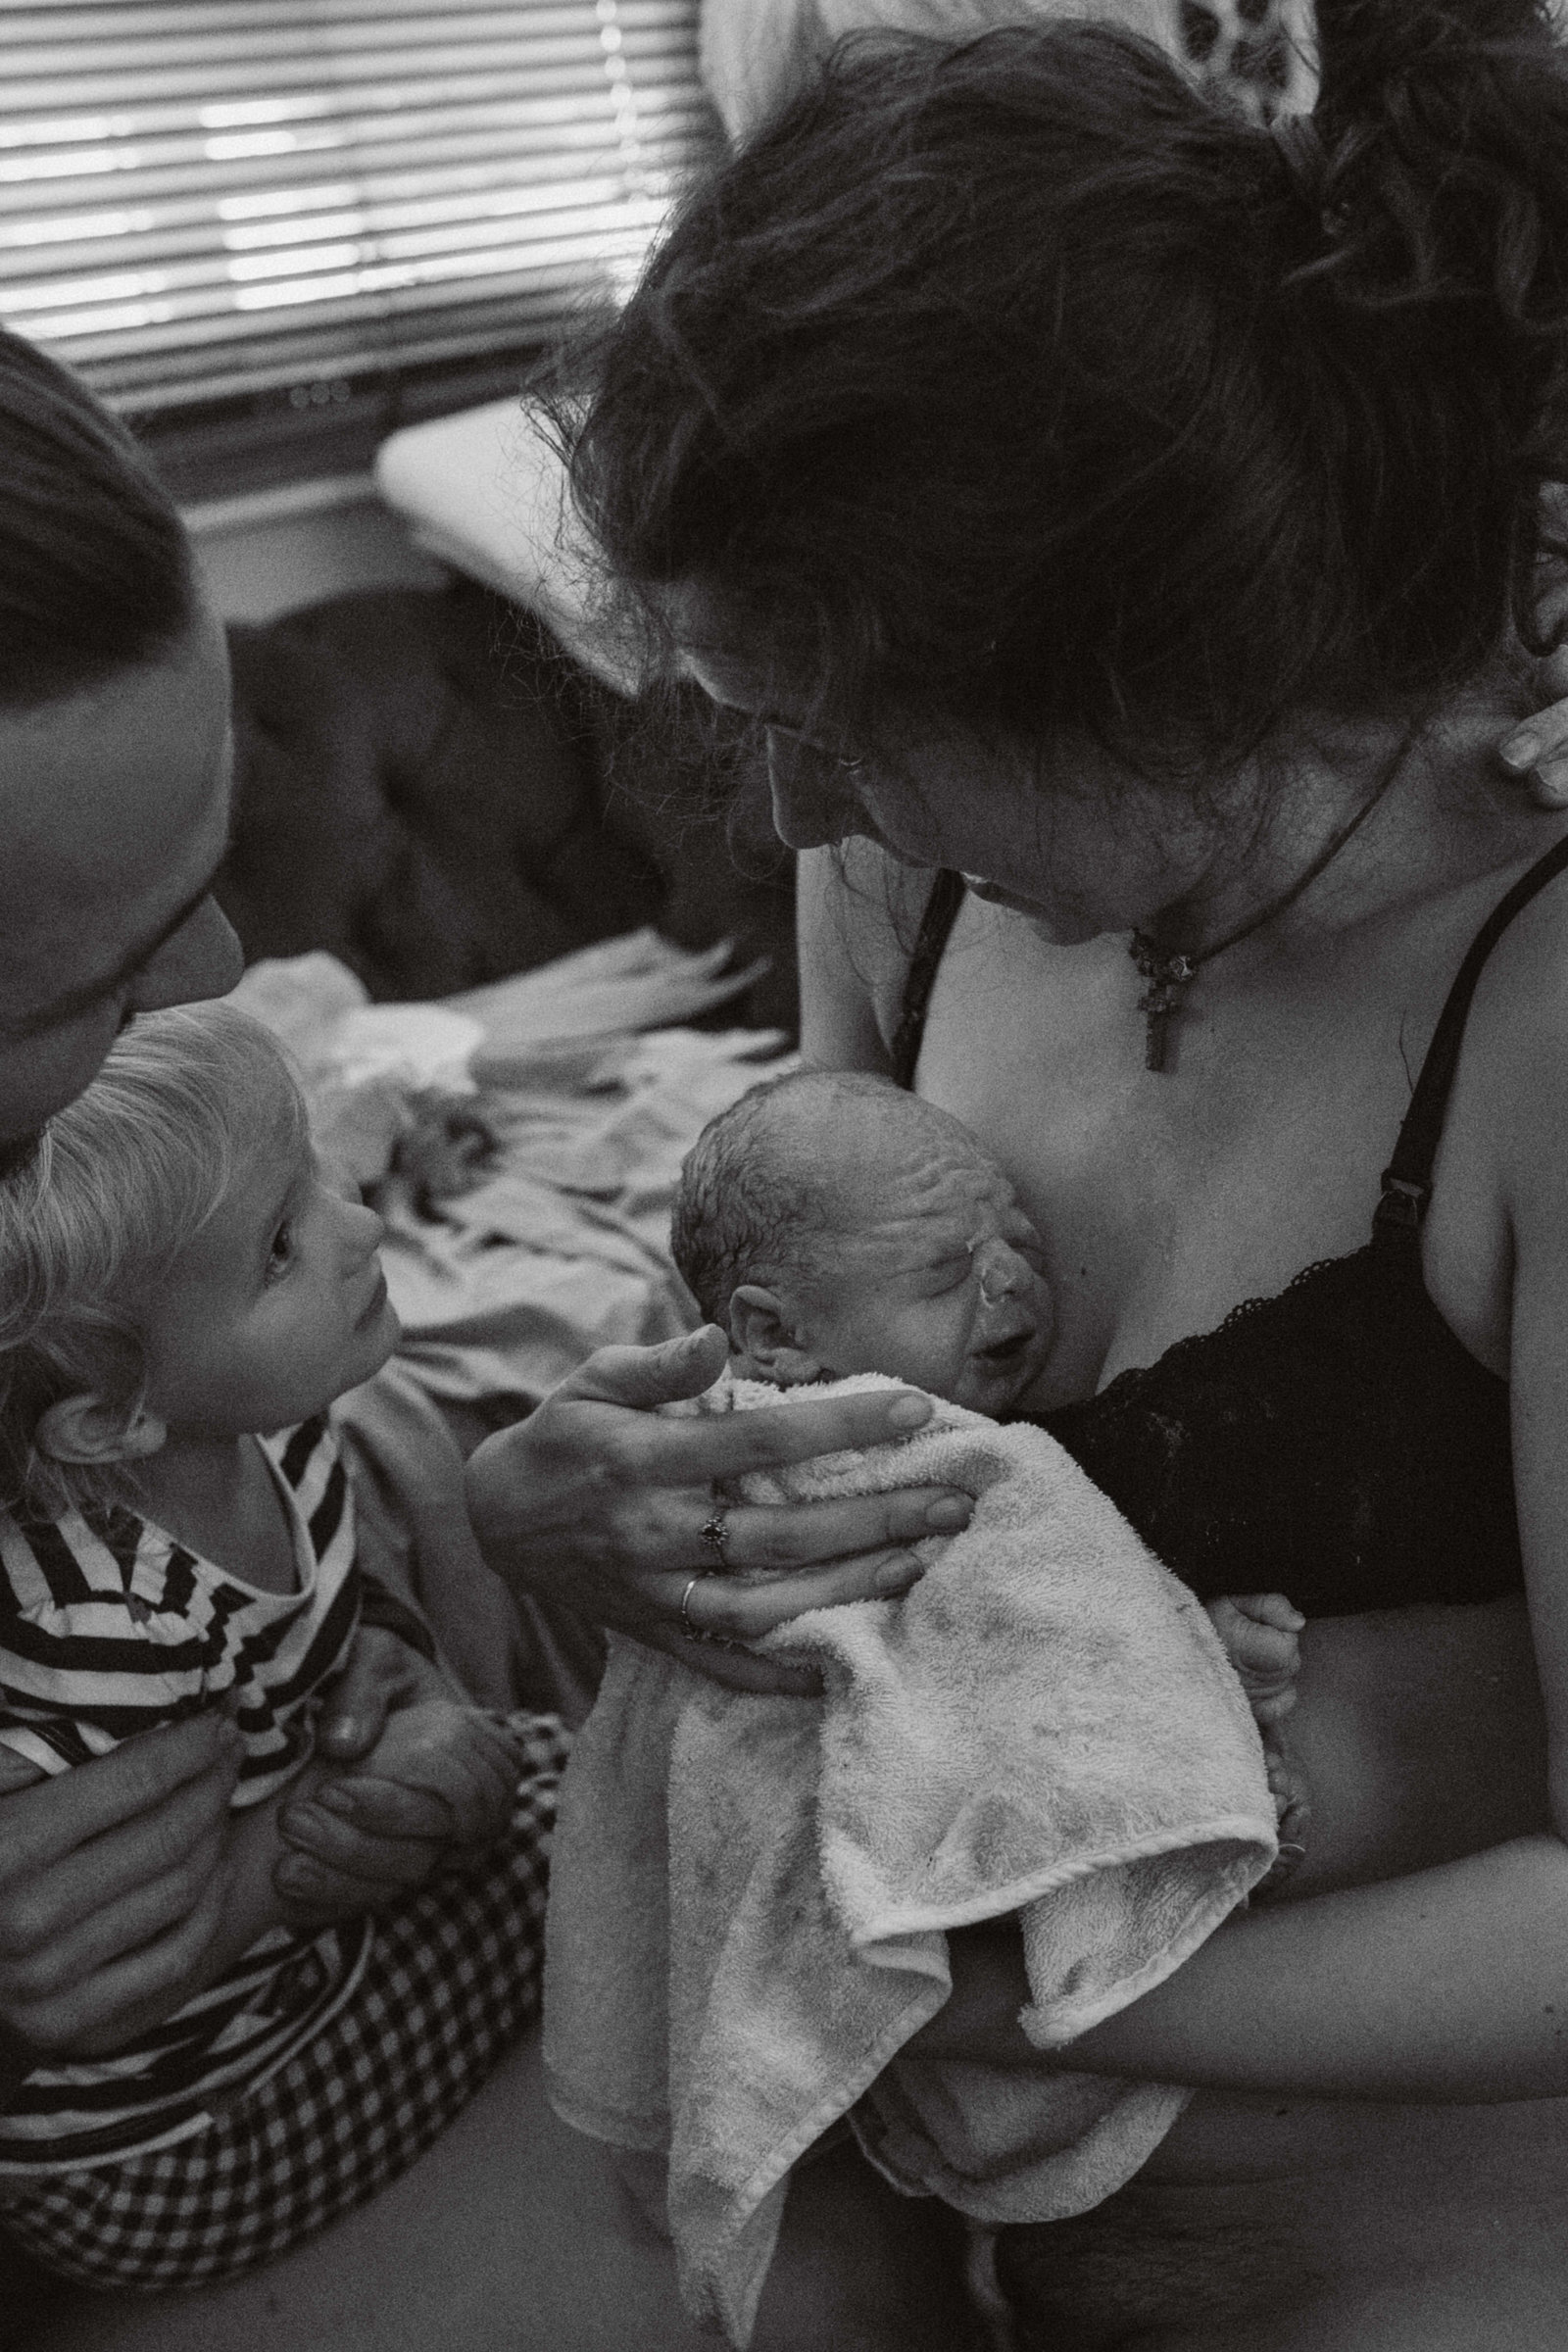 Black and white Documentary photograph of Ipswich mum holding newborn baby seconds after home birth